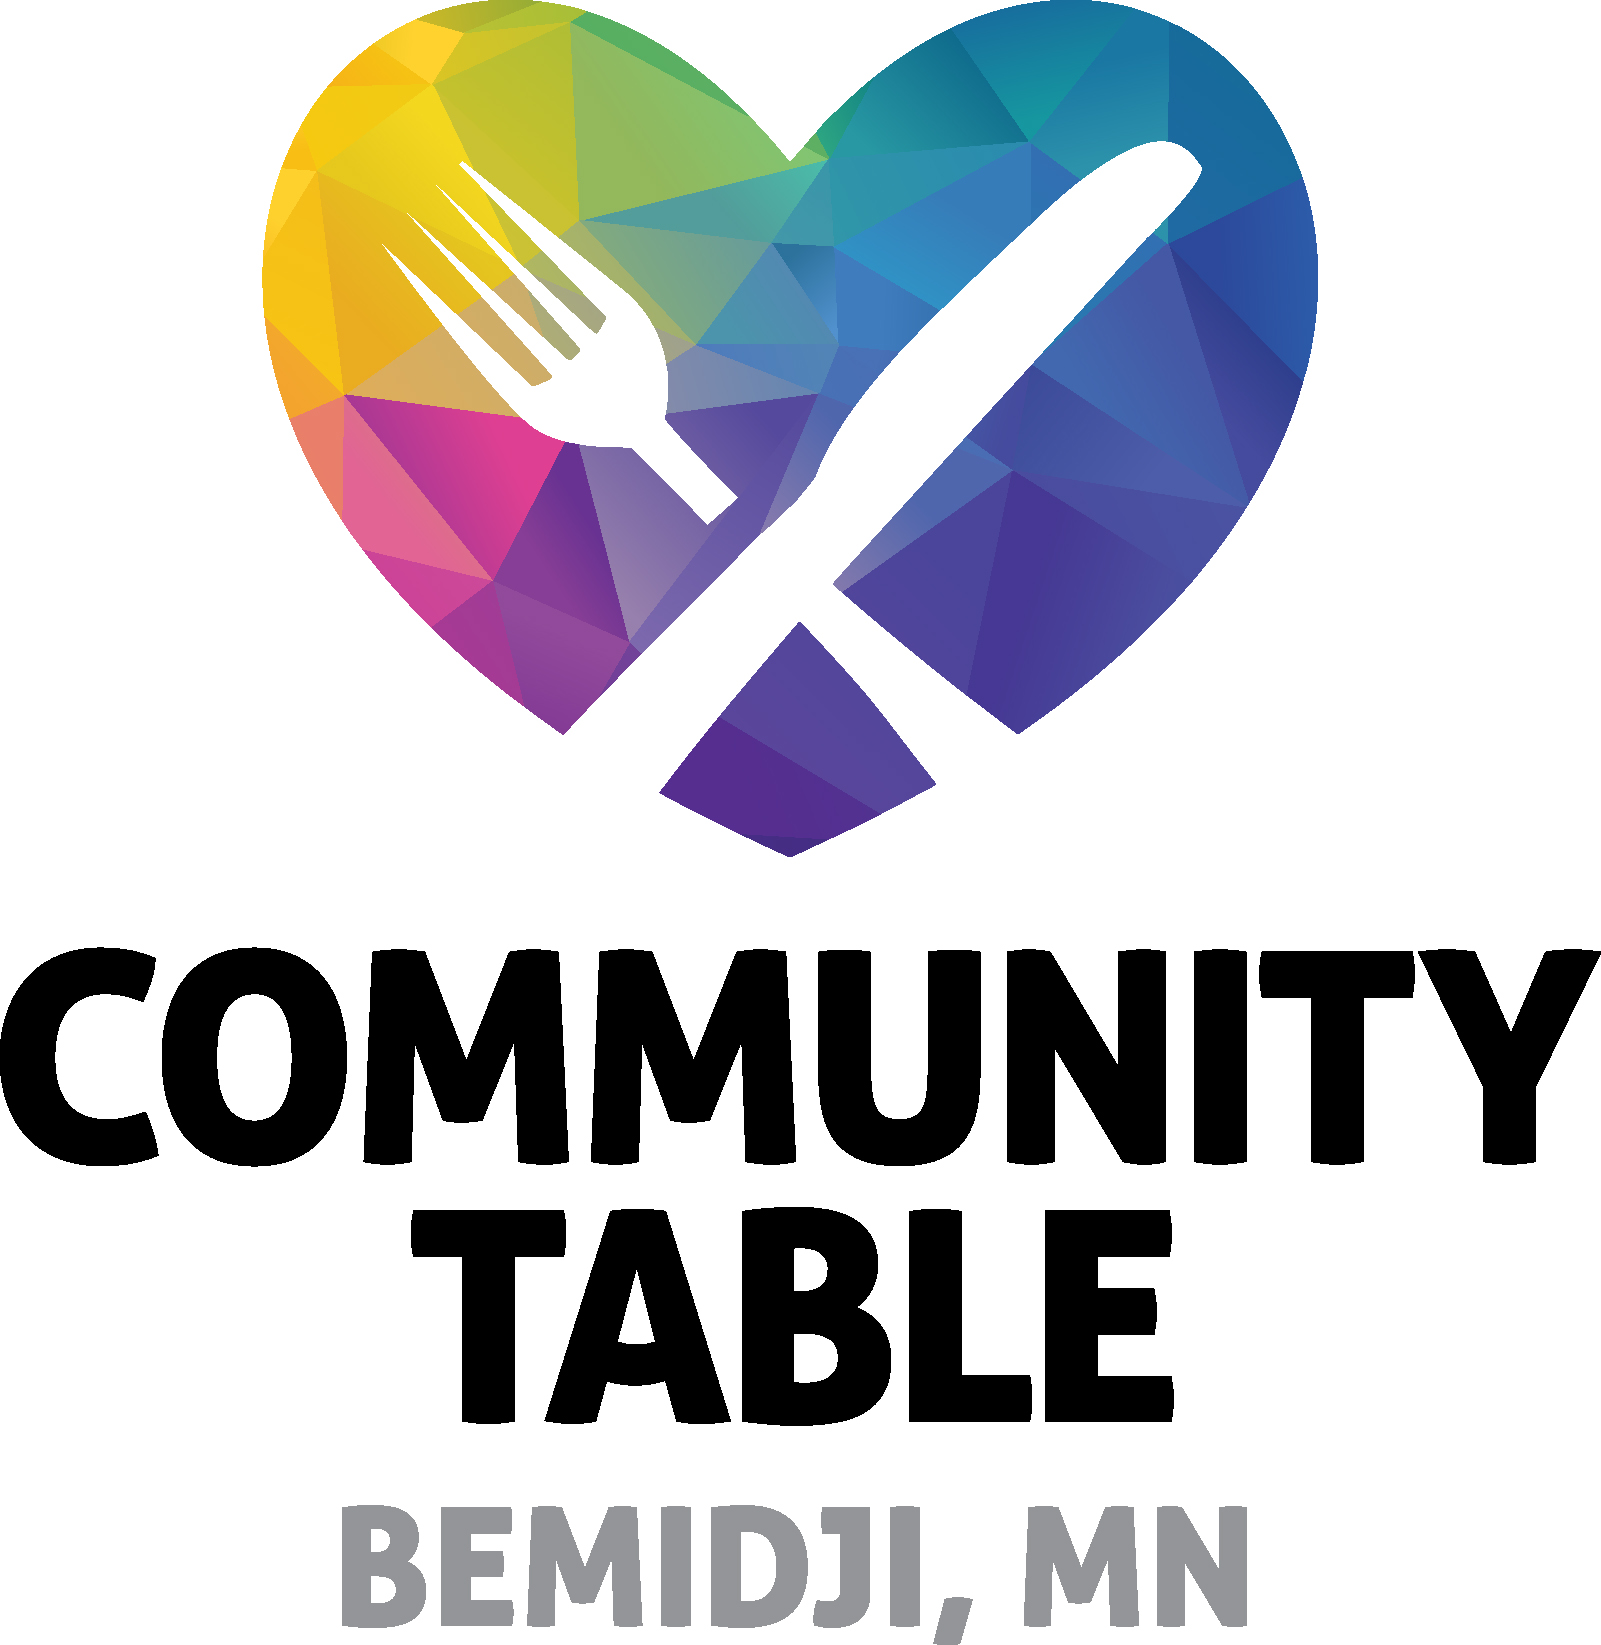 Community Table - Bemidji, MN